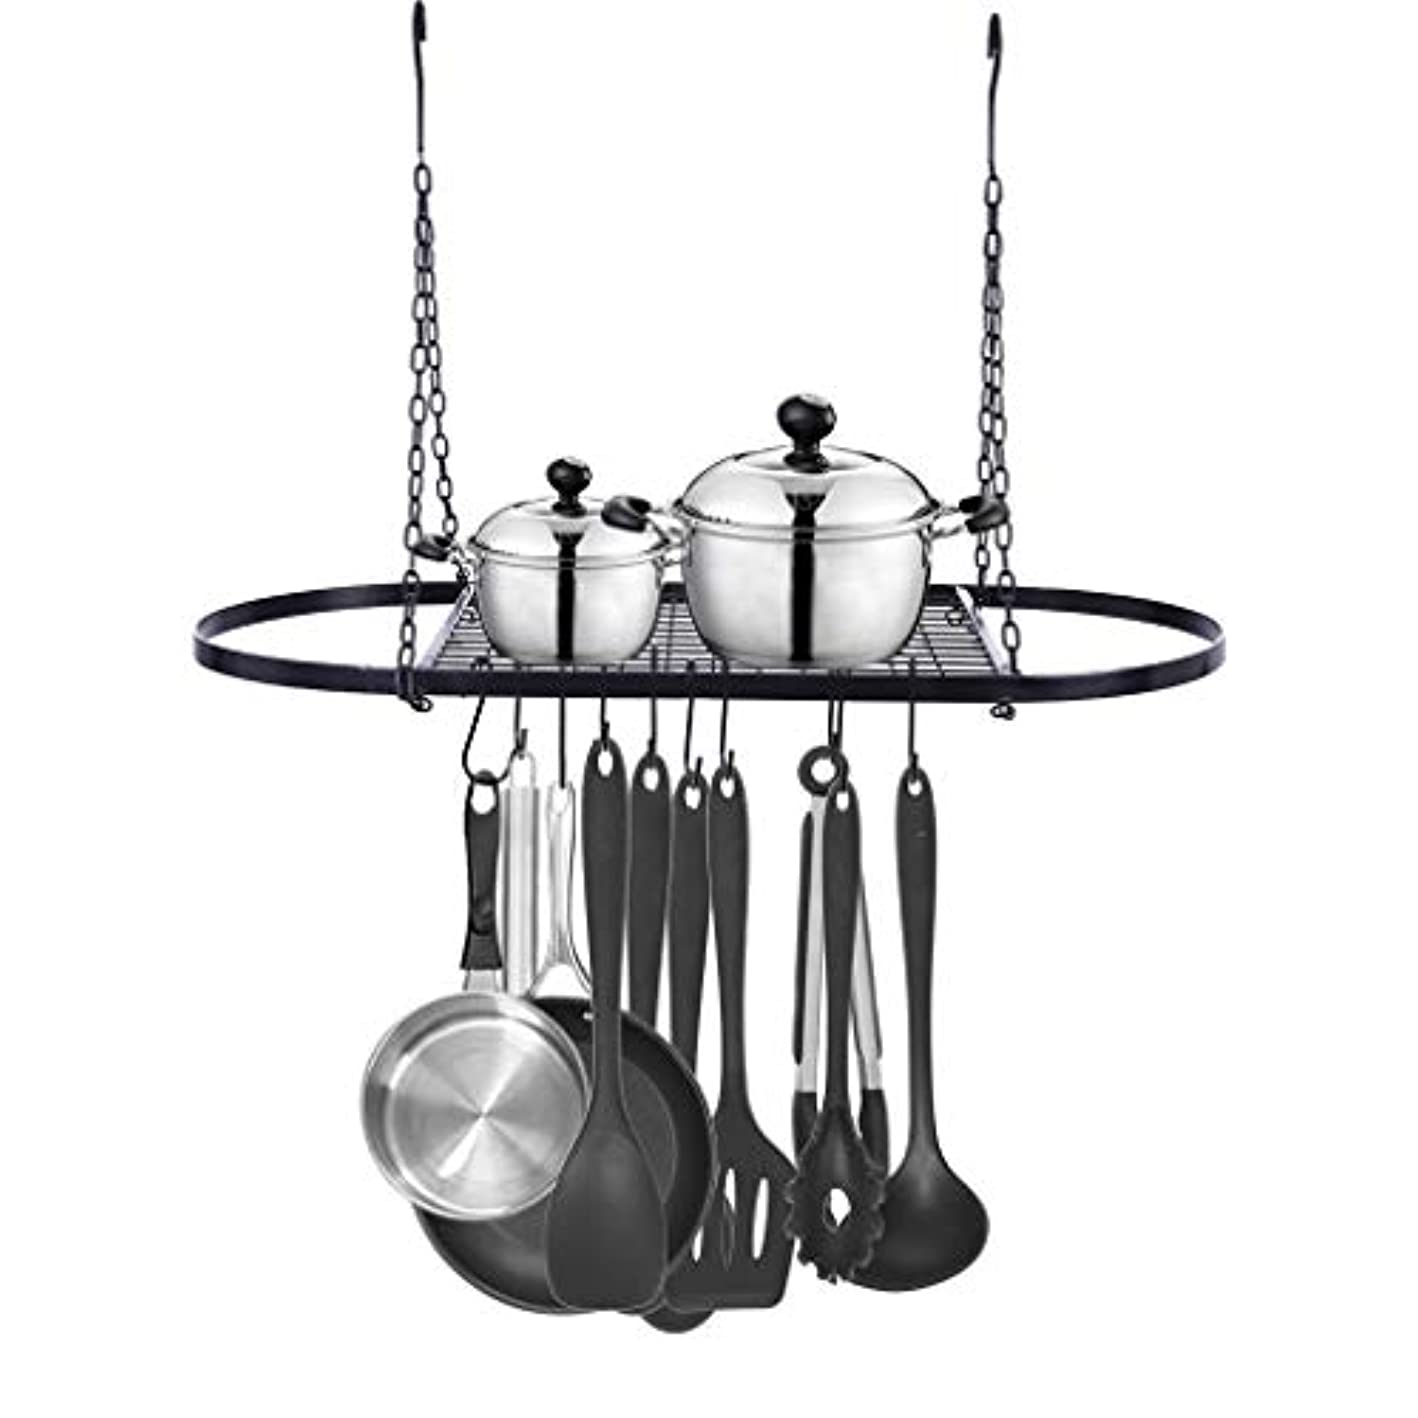 Swyss Pot and Pan Rack for Ceiling with 10 Hooks — Decorative Oval Mounted Storage Rack — Multi-Purpose Organizer for Home, Restaurant, Kitchen Cookware, Utensils